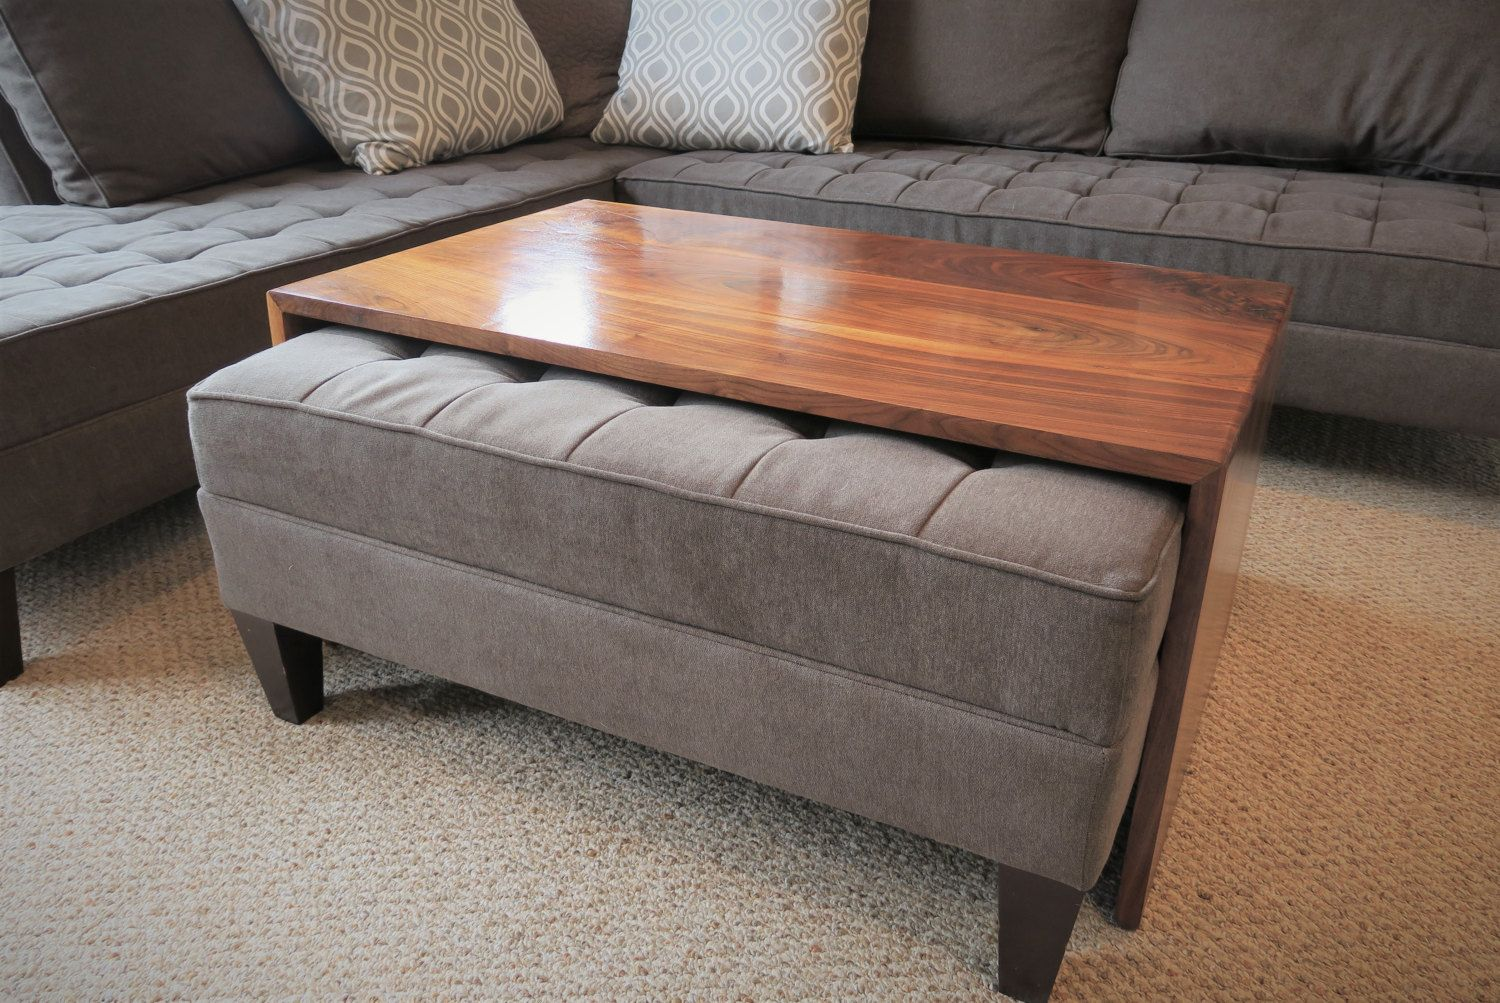 Ottoman Tray Etsy Leather Ottoman Coffee Table Coffee Table Wood Ottoman Table [ 1003 x 1500 Pixel ]